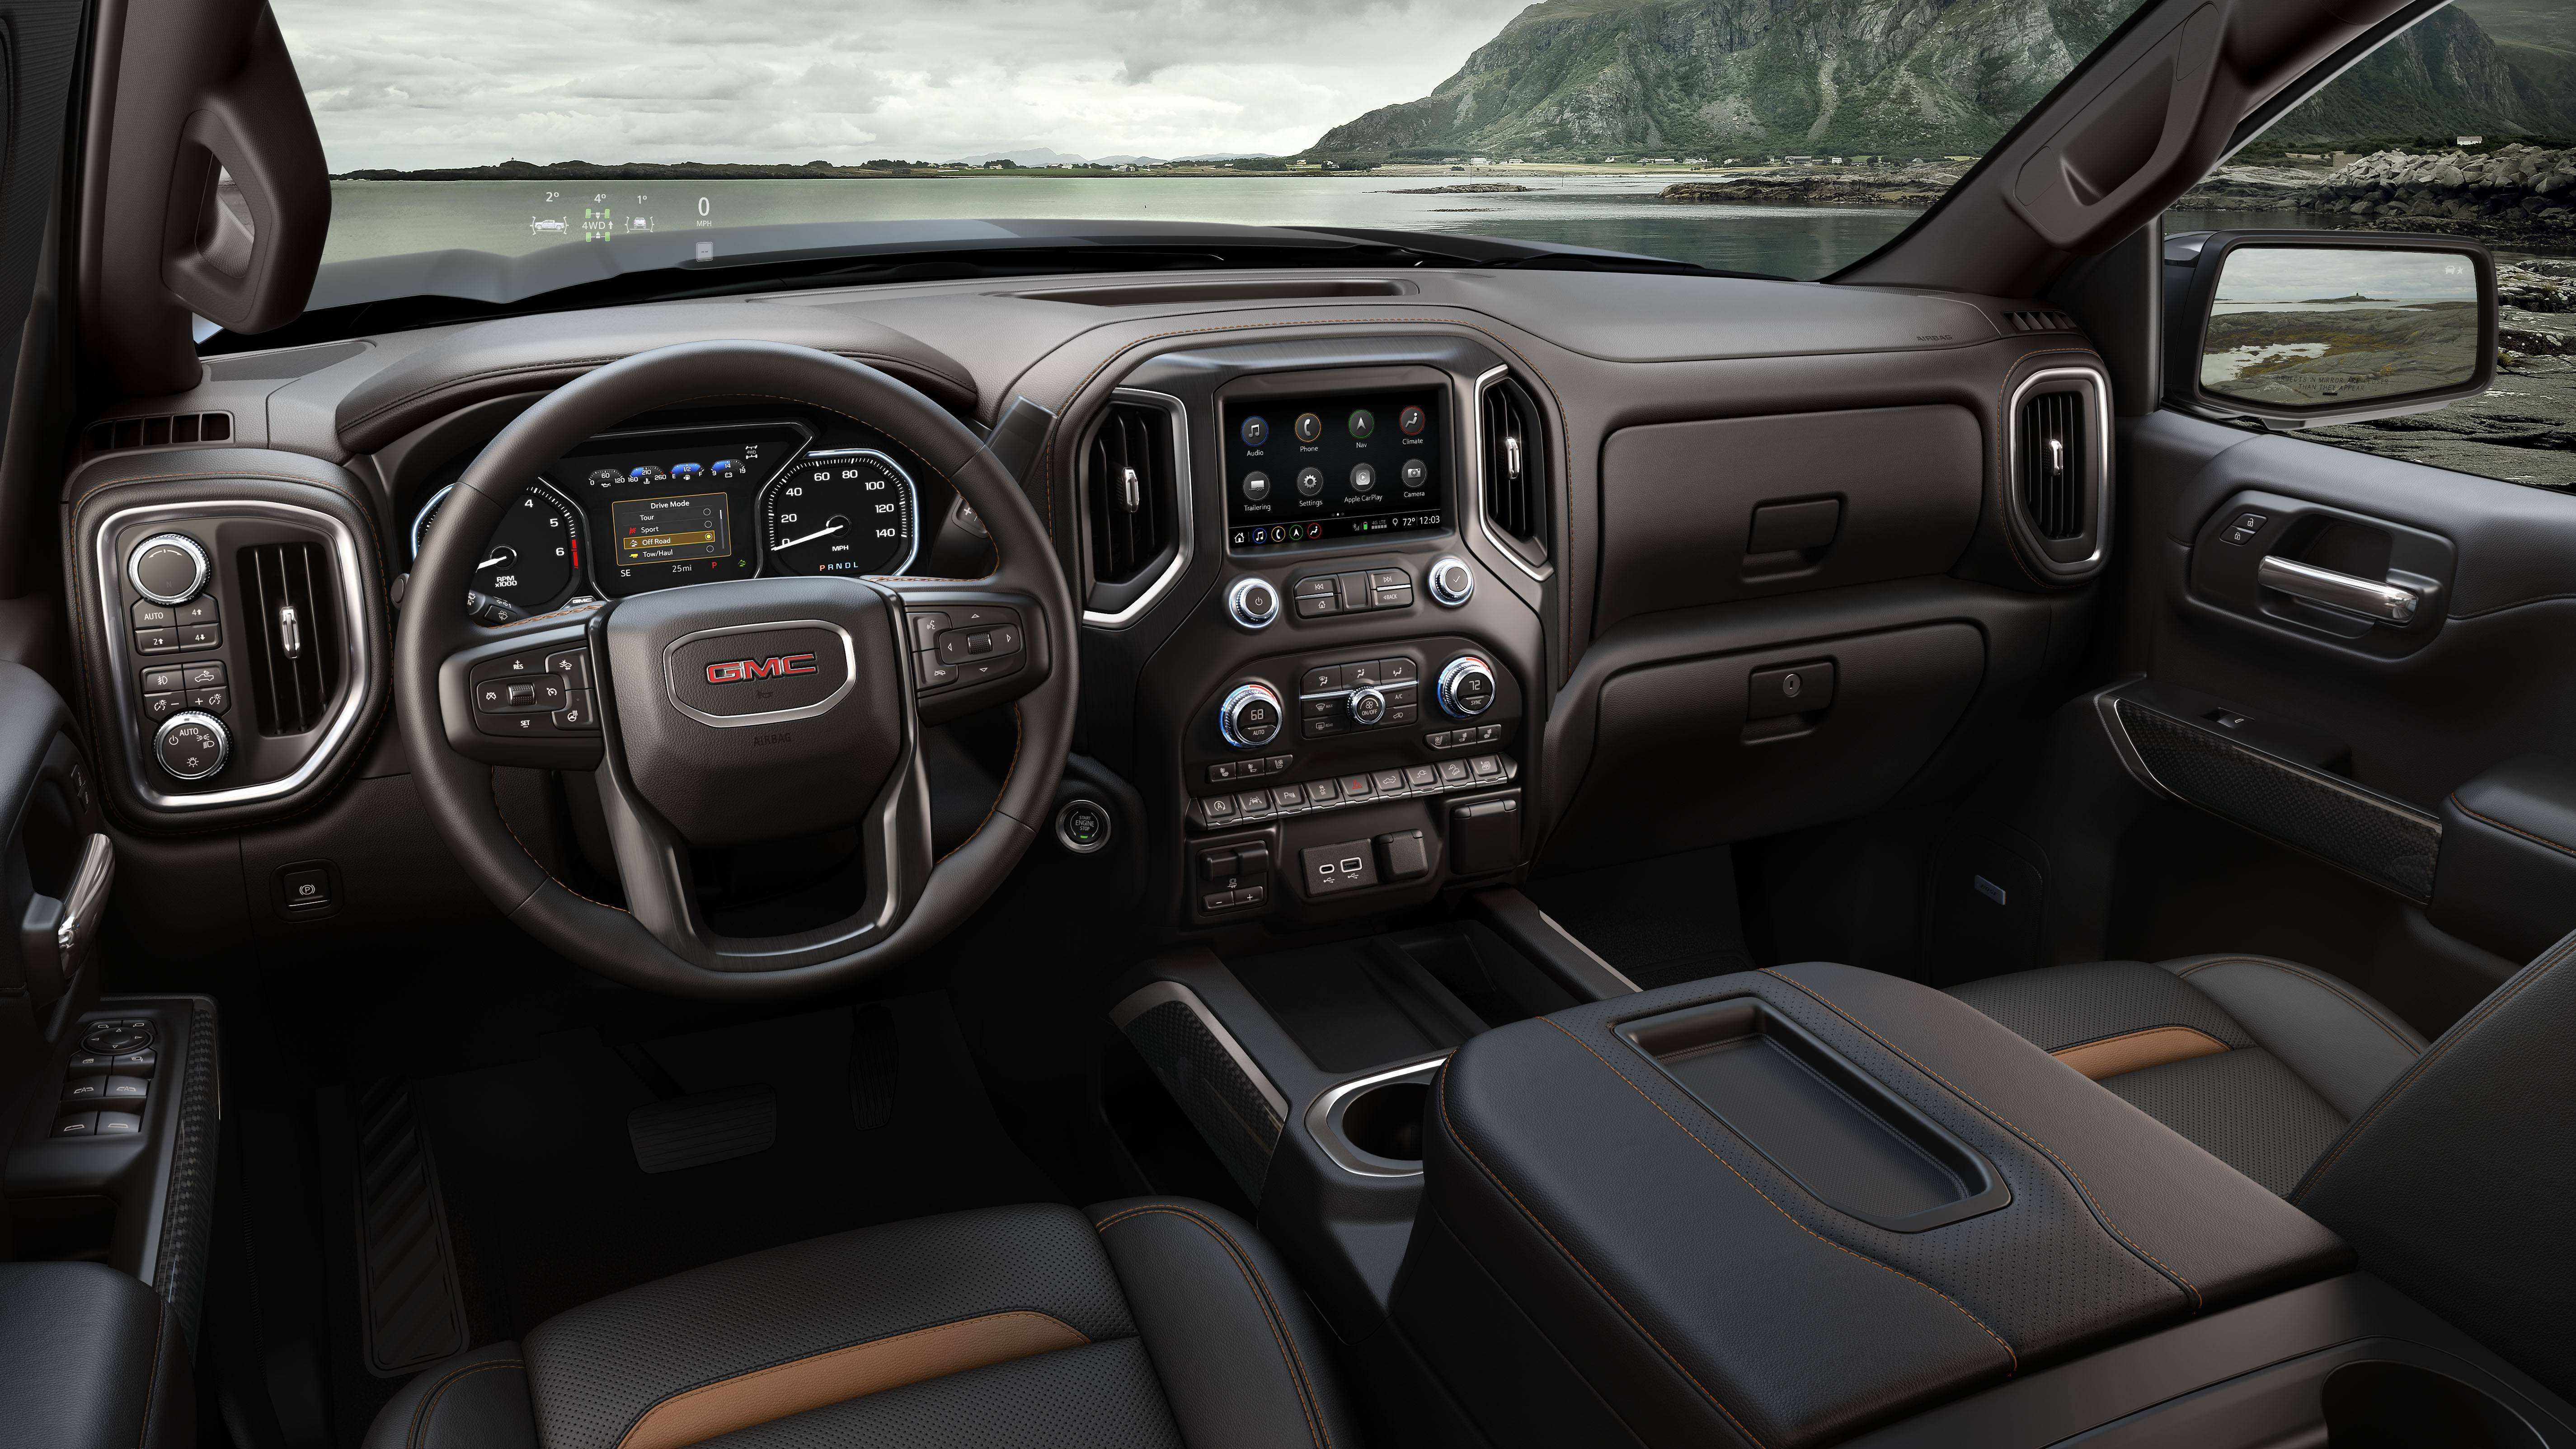 44 Gallery of 2019 Gmc 1500 Interior Pictures with 2019 Gmc 1500 Interior